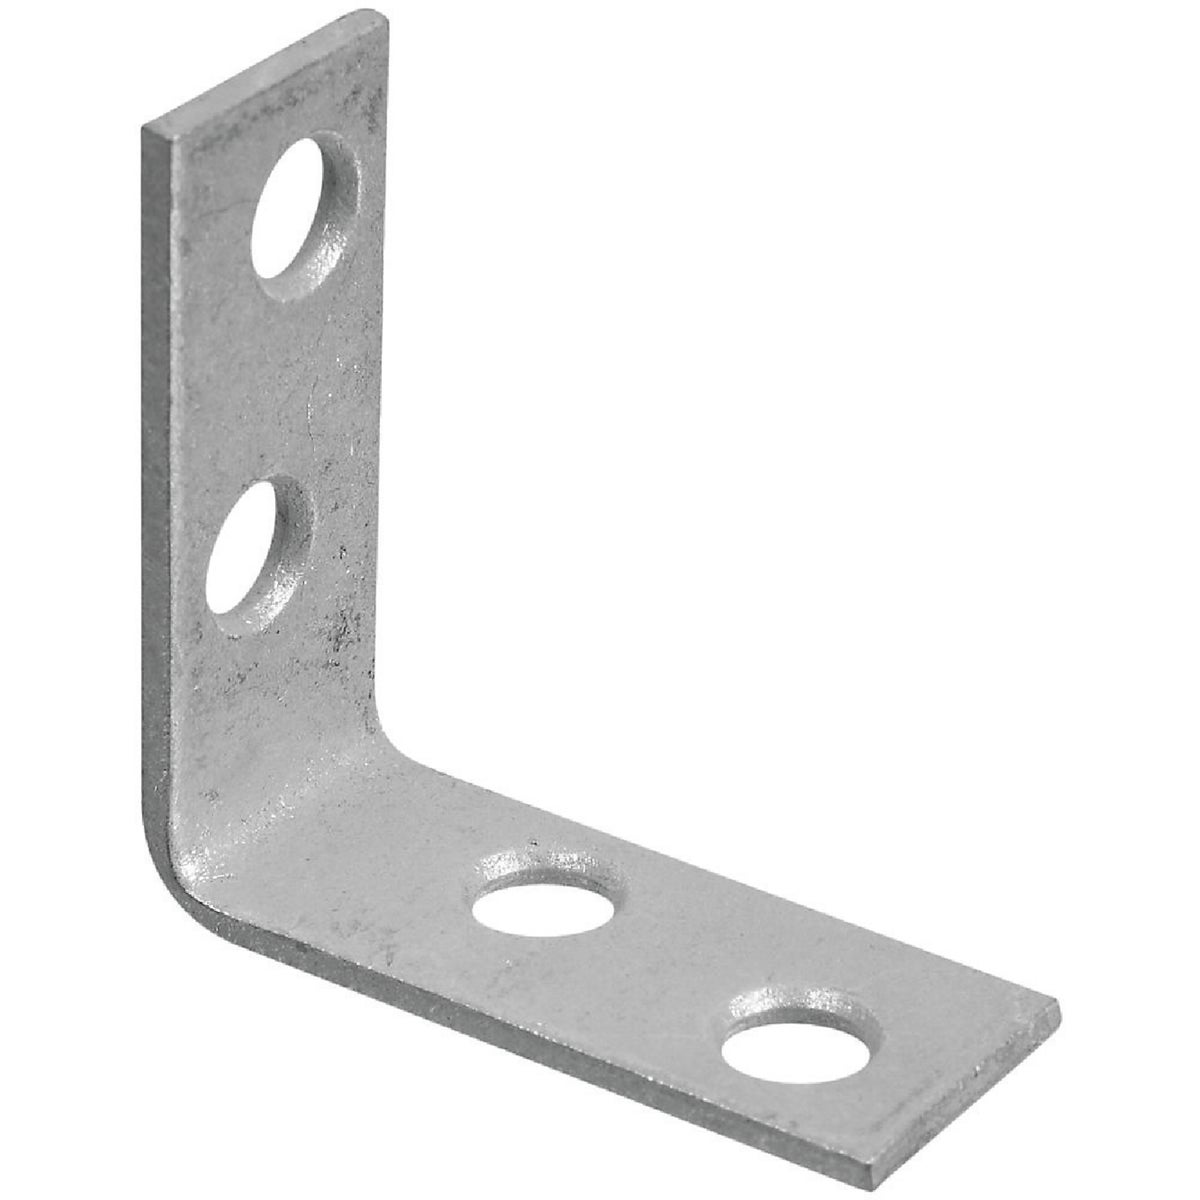 "1-1/2"" GALV CORNER BRACE - N208736 by National Mfg Co"